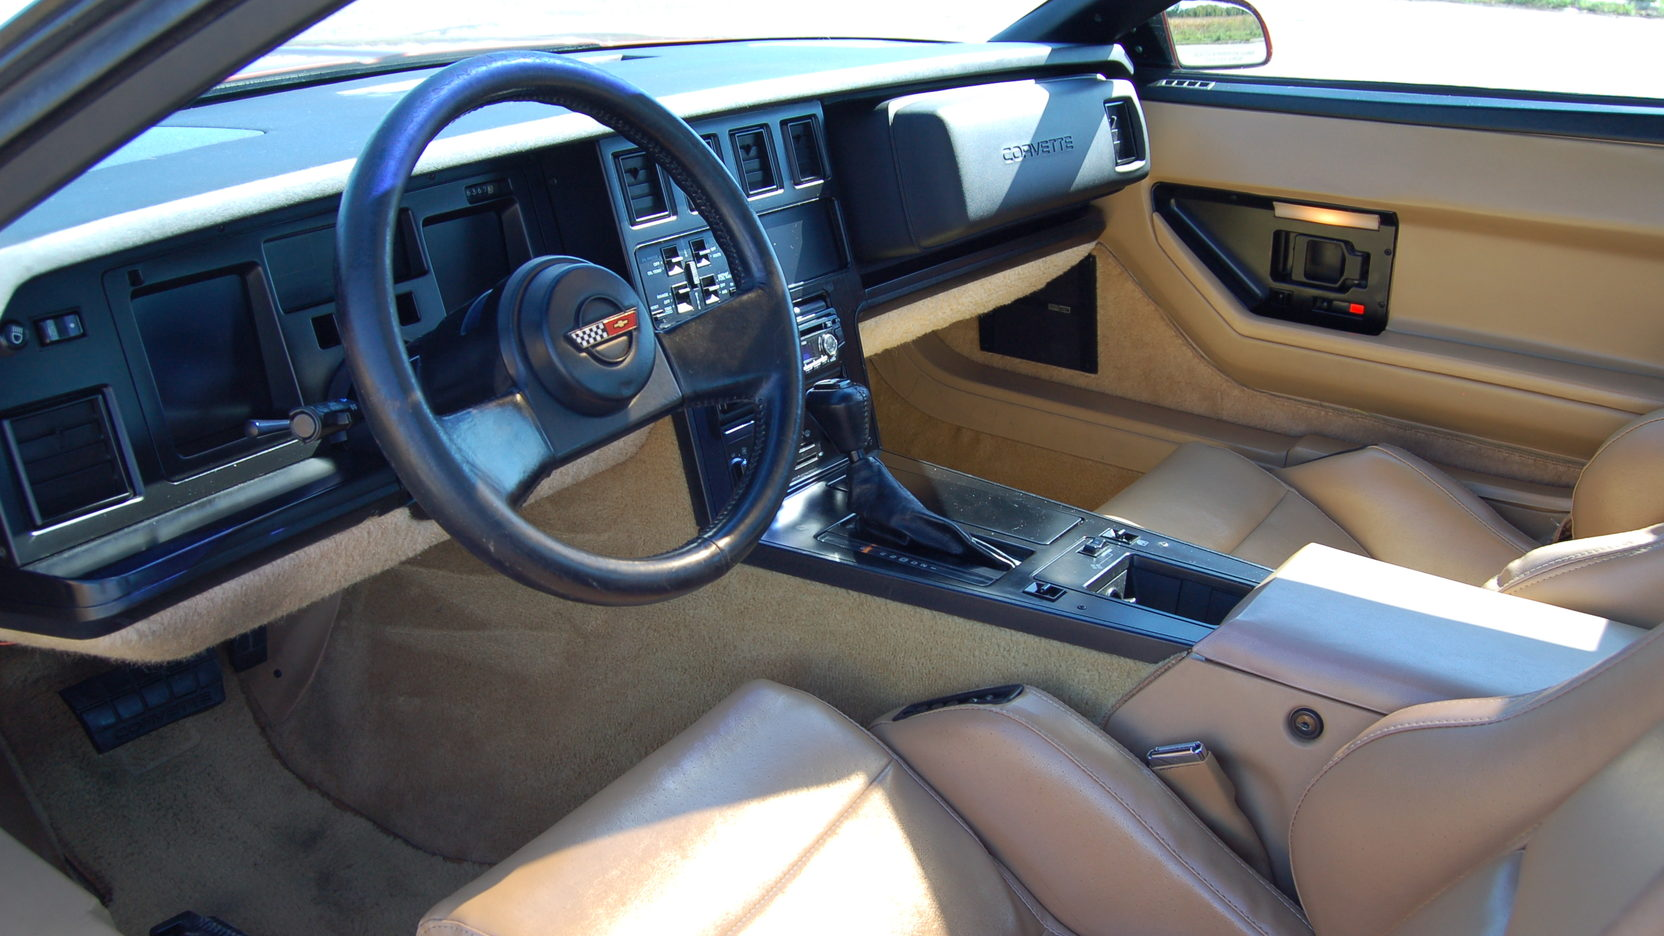 1987 Chevrolet Corvette interior dash